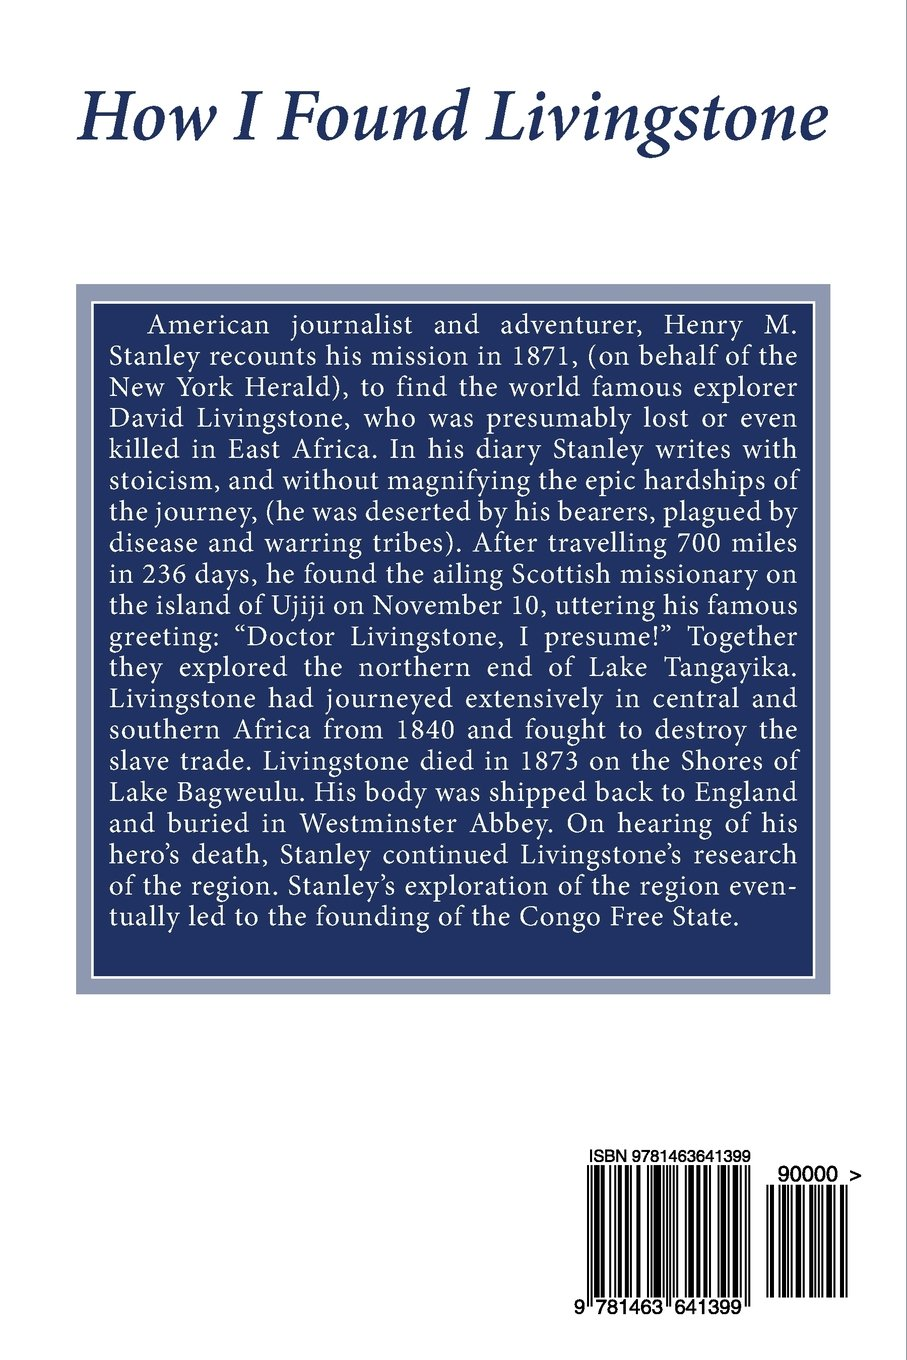 How I Found Livingstone: Henry M. Stanley: 9781463641399: Amazon.com: Books  Dr Livingstone I Presume Accessories